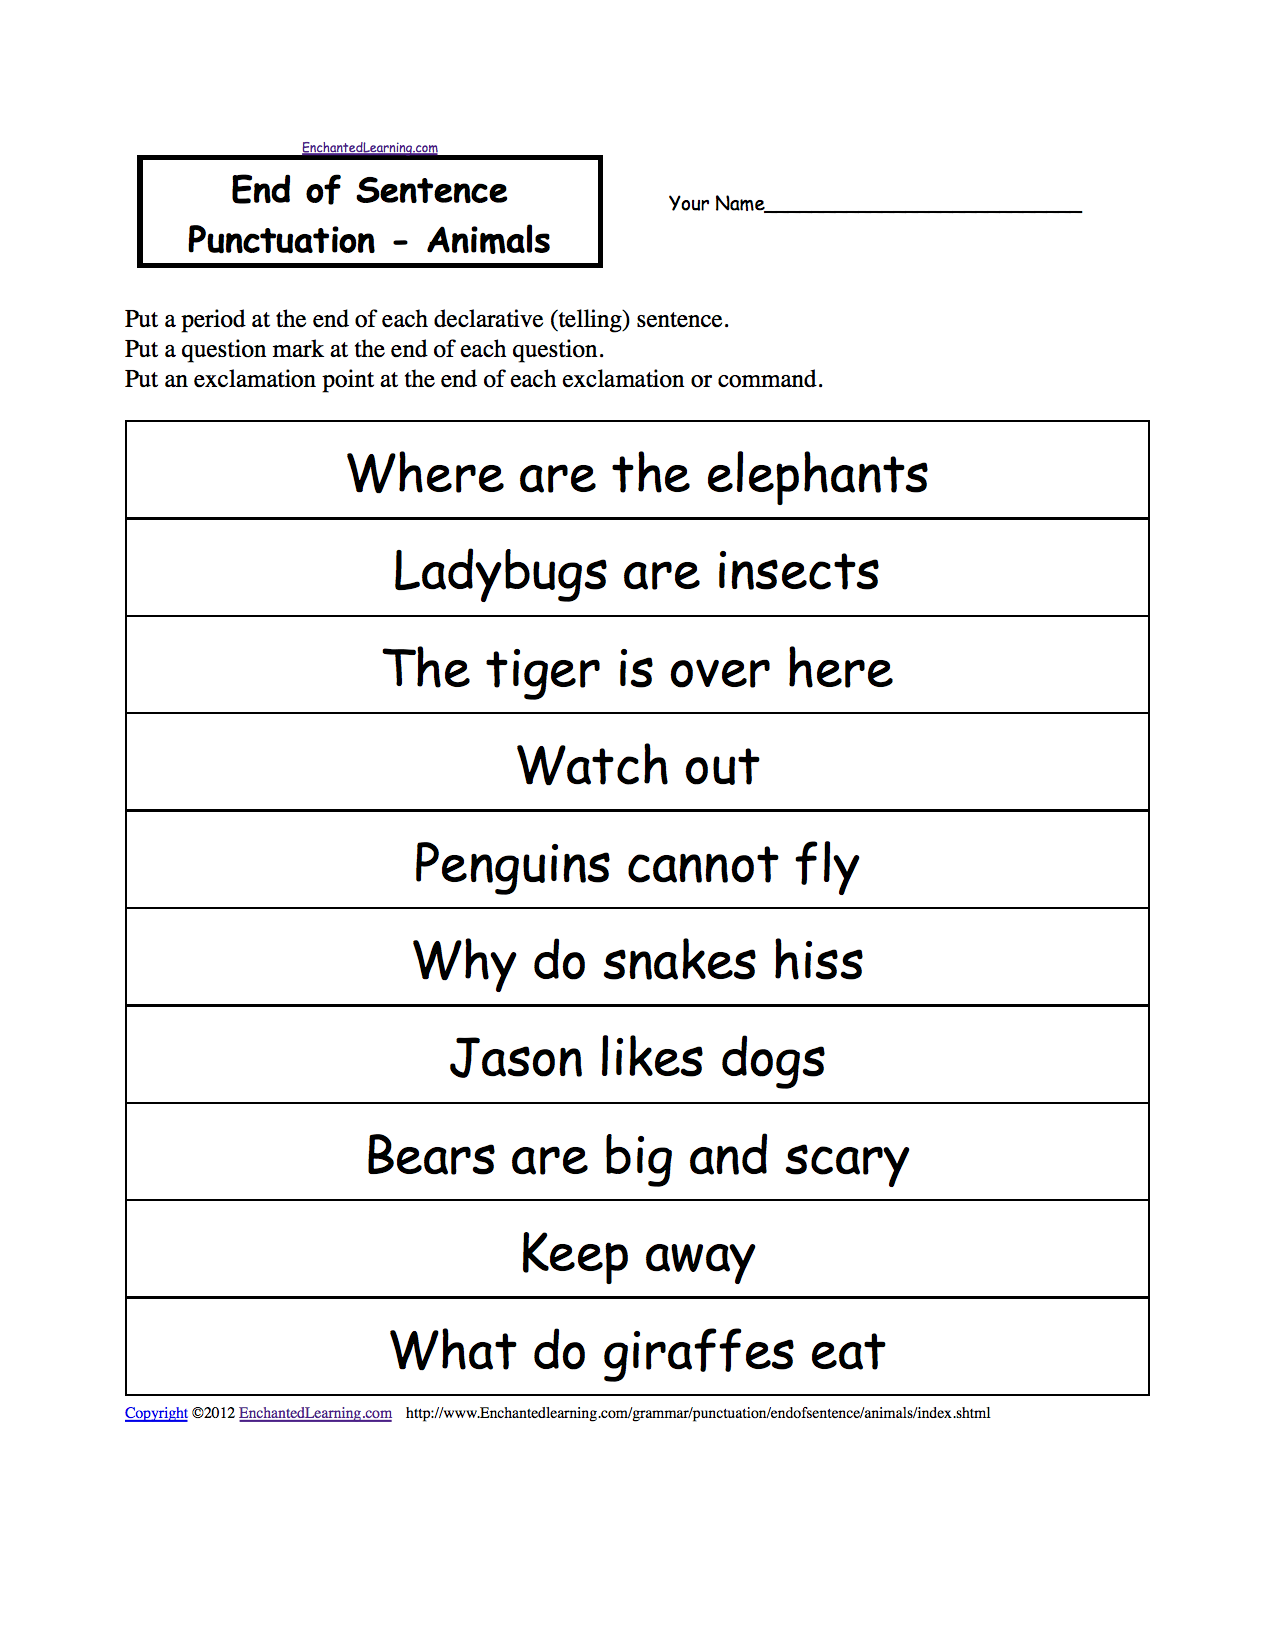 Worksheets Ending Punctuation Worksheets end of sentence punctuation printable worksheets punctuate